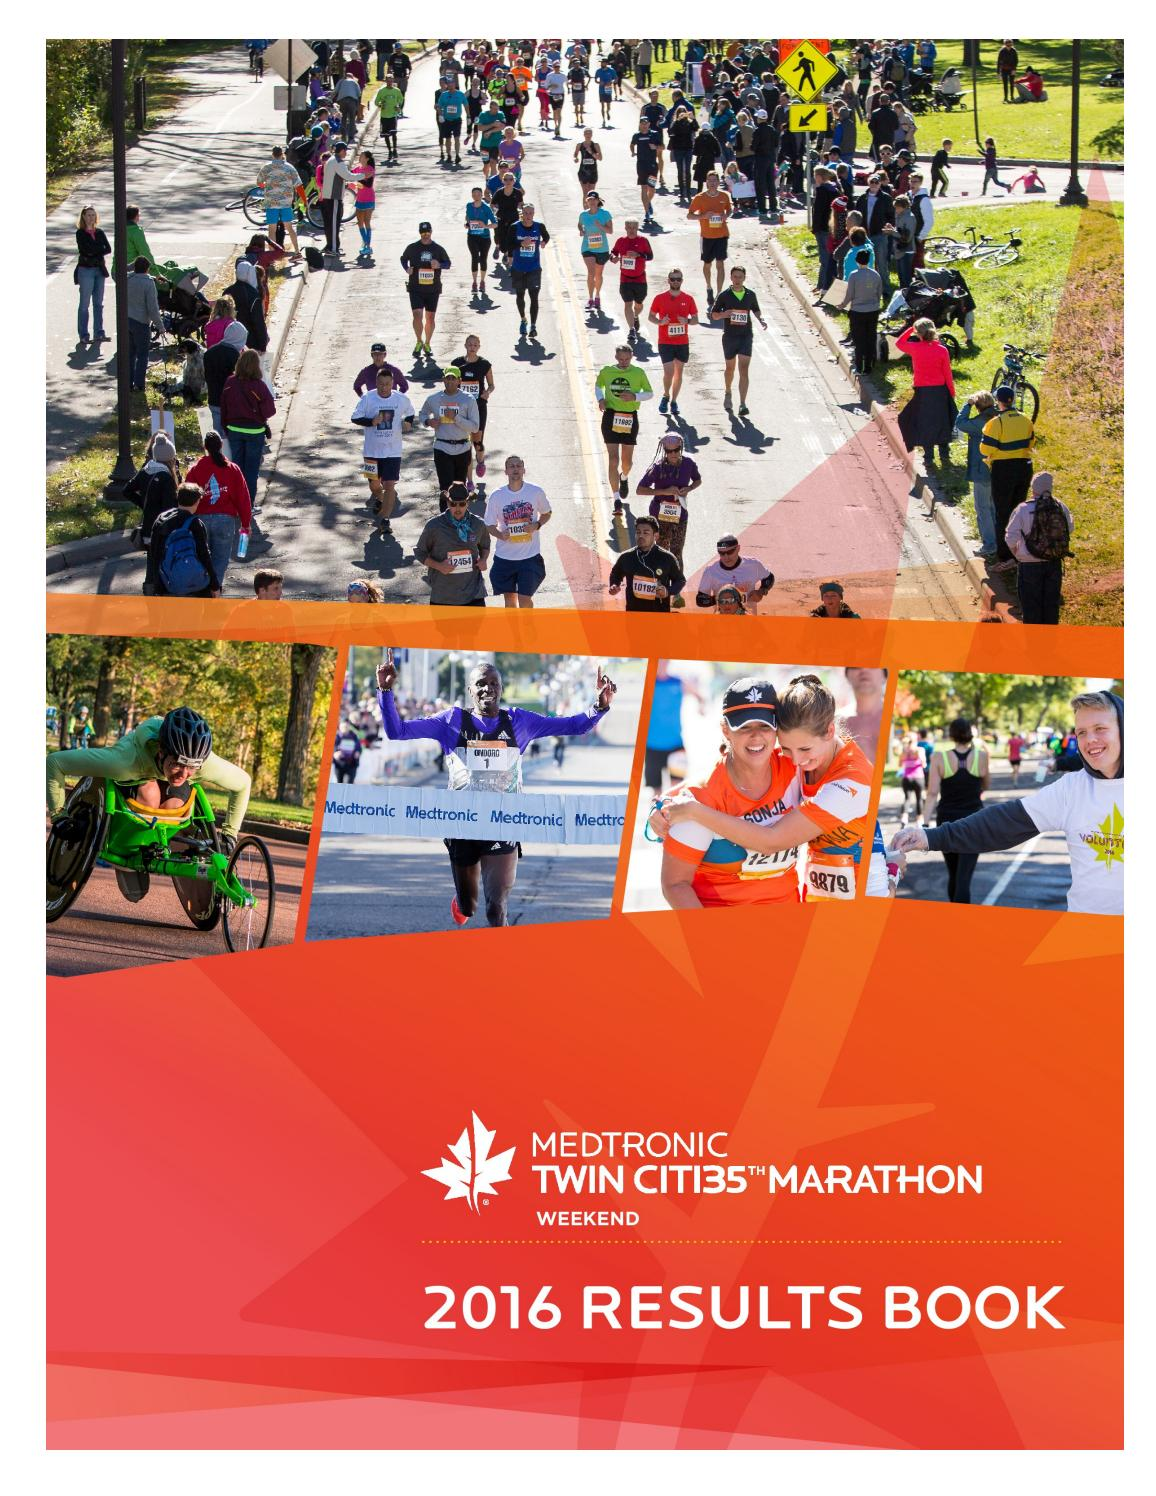 2016 medtronic twin cities marathon weekend results book by twin 2016 medtronic twin cities marathon weekend results book by twin cities in motion issuu